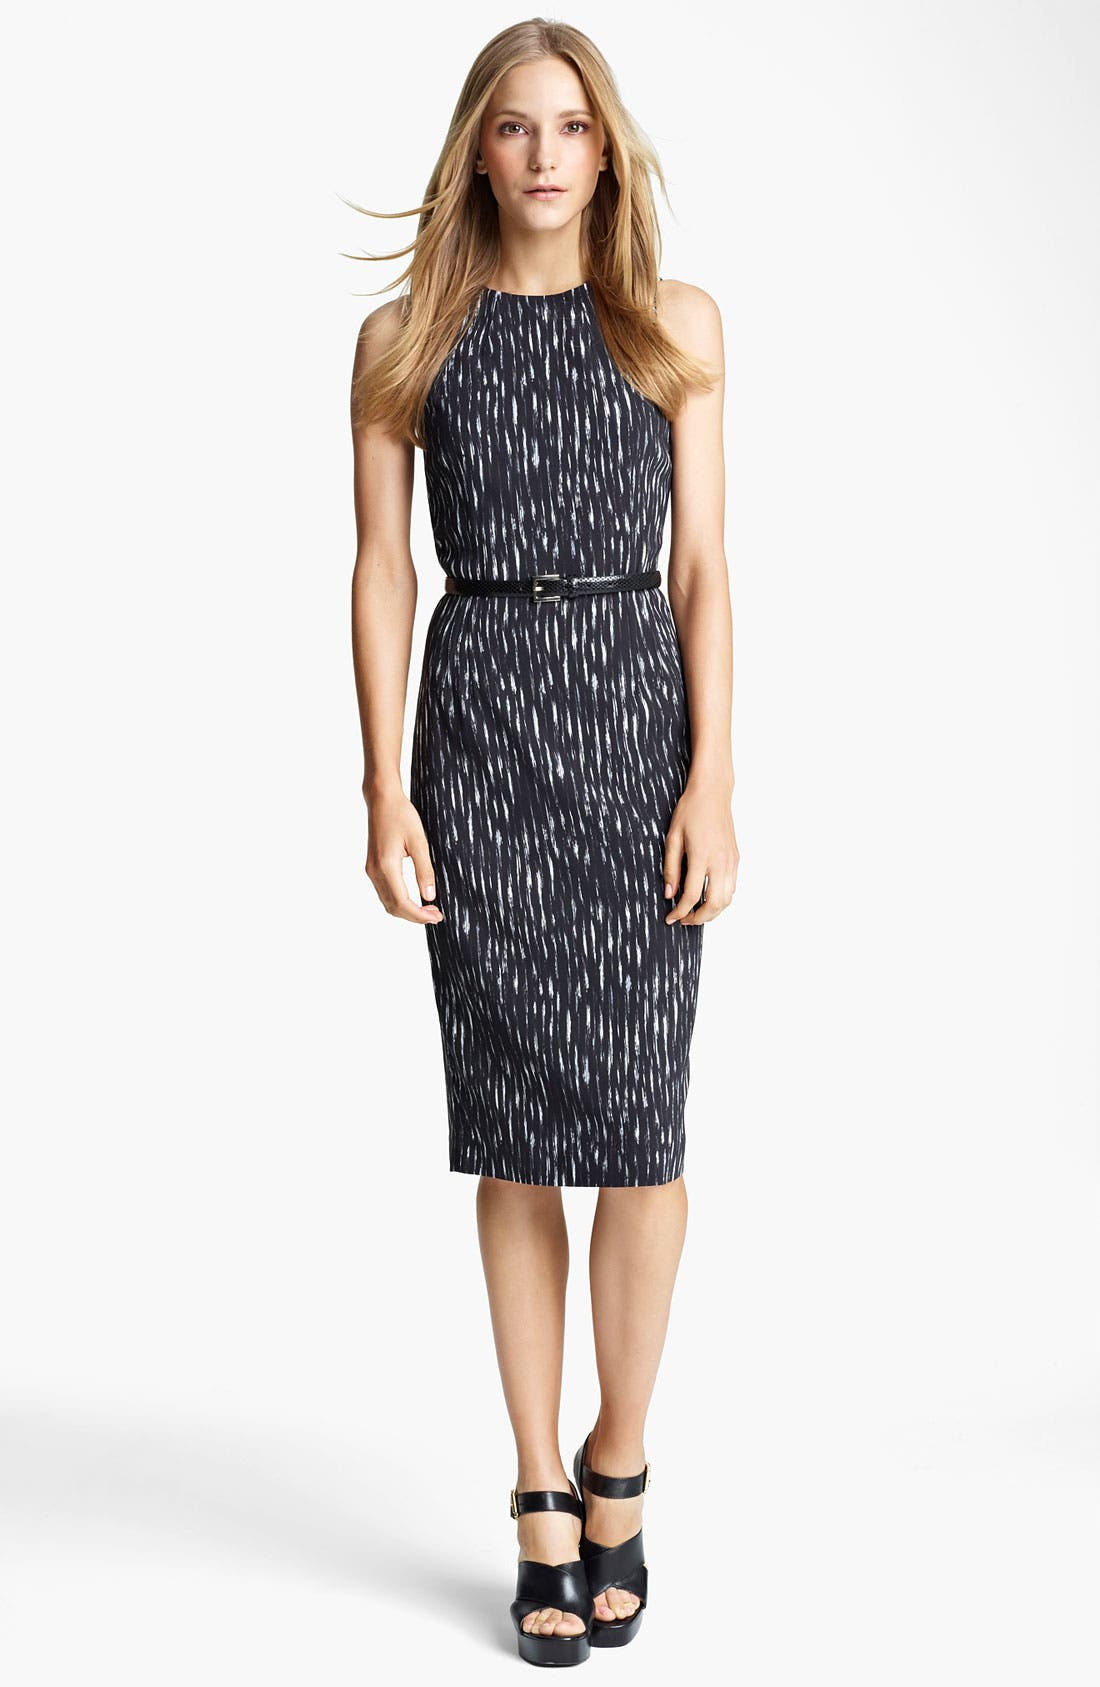 Main Image - Michael Kors Ikat Print Cady Sheath Dress